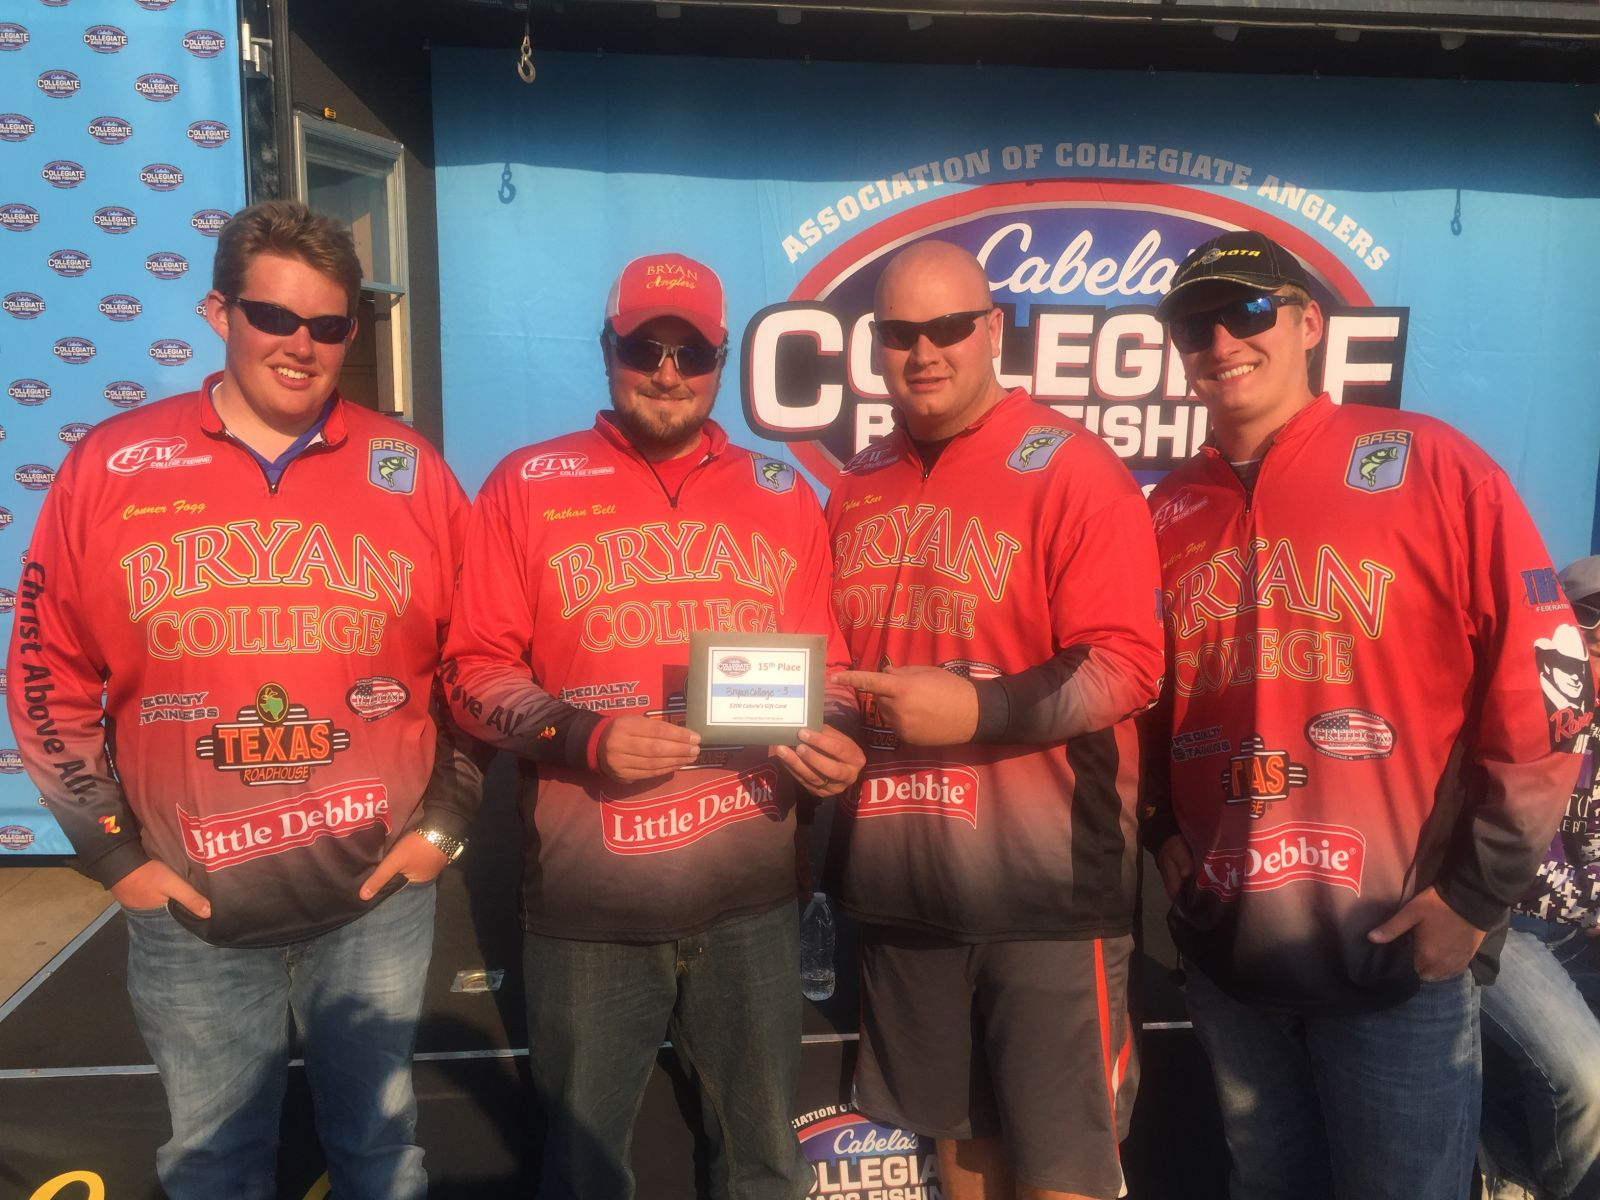 lions excel in cabela\u0027s collegiate bass fishing open, ranking 2nd2779522 Virginia Tech Apparel #21